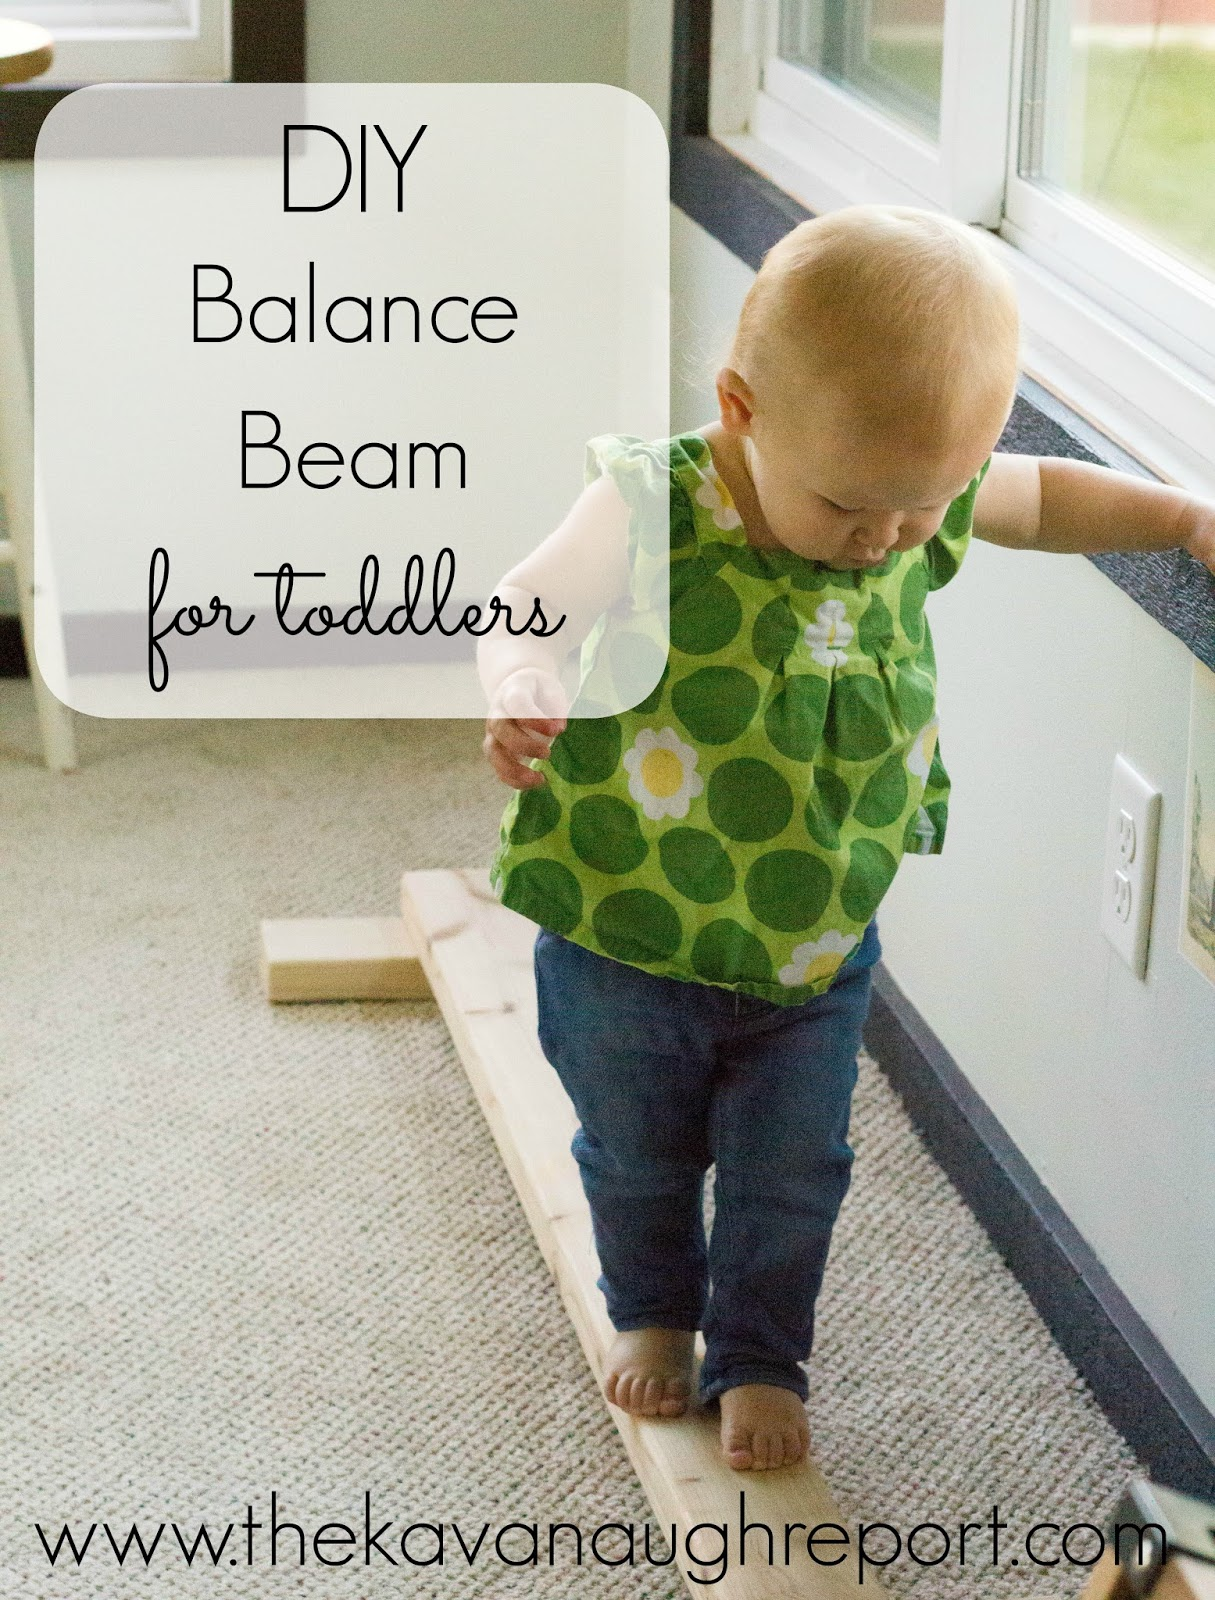 DIY Wooden Balance Beam on book for toddlers, baby for toddlers, gymnastics for toddlers, games for toddlers, brush for toddlers, spring boards for toddlers, floor for toddlers, steps for toddlers, ropes for toddlers, tumbling for toddlers, zip line for toddlers, hopscotch for toddlers, ballet for toddlers, bath for toddlers, climbing for toddlers, baseball for toddlers, boxes for toddlers, rings for toddlers, chalk for toddlers, swimming for toddlers,